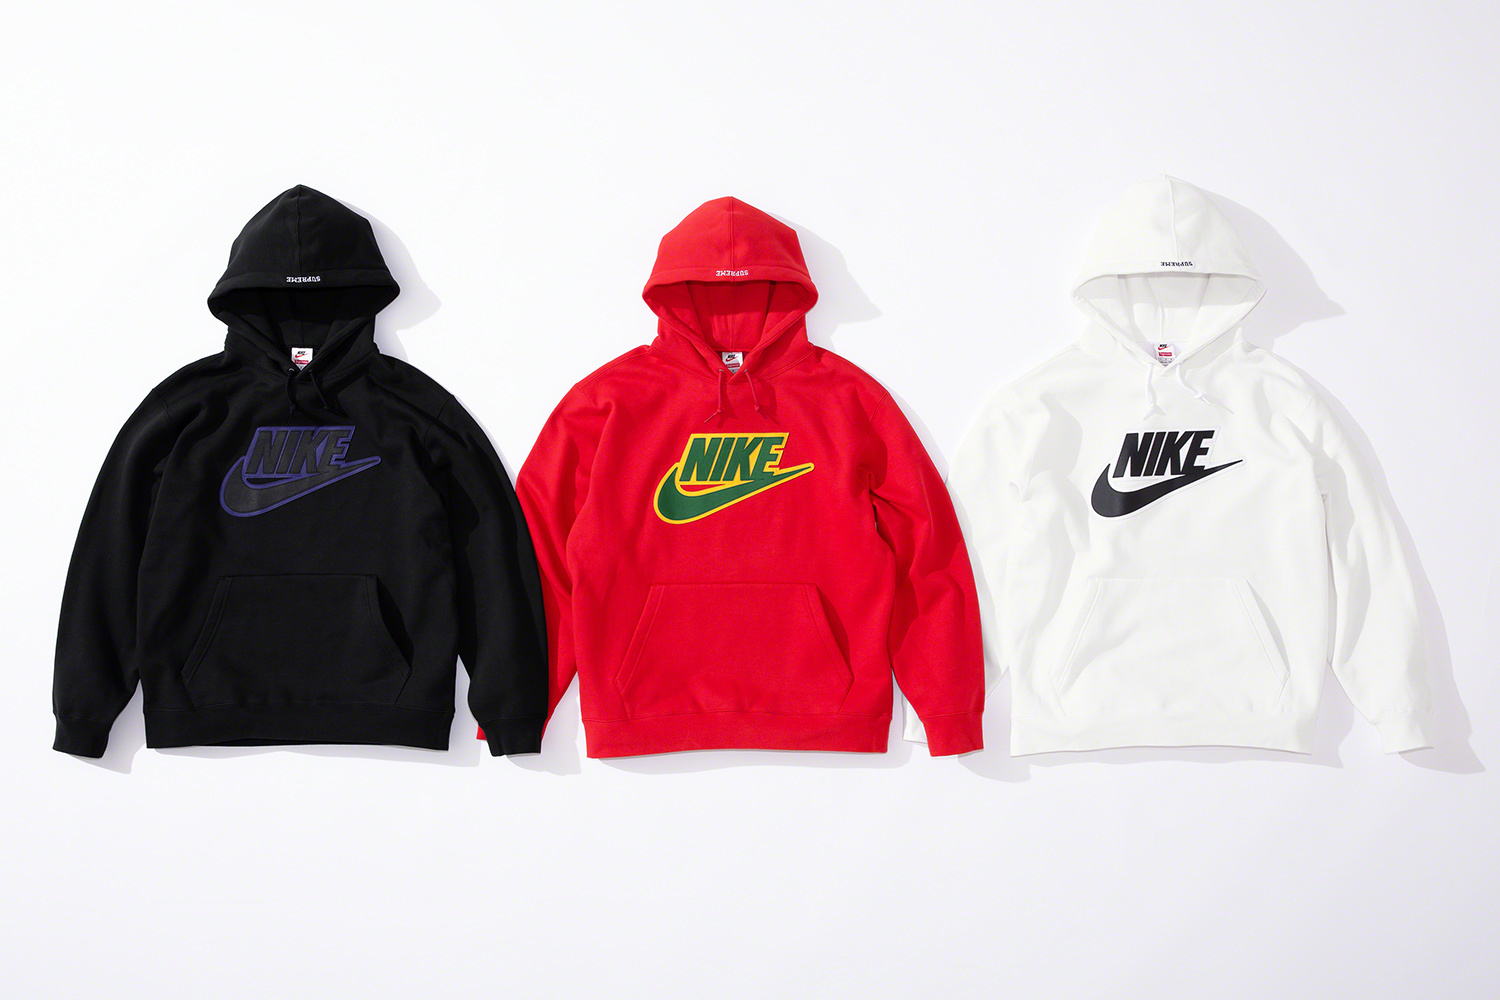 supreme-nike-collaboration-19aw-19fw-part-3-release-20191130-week14